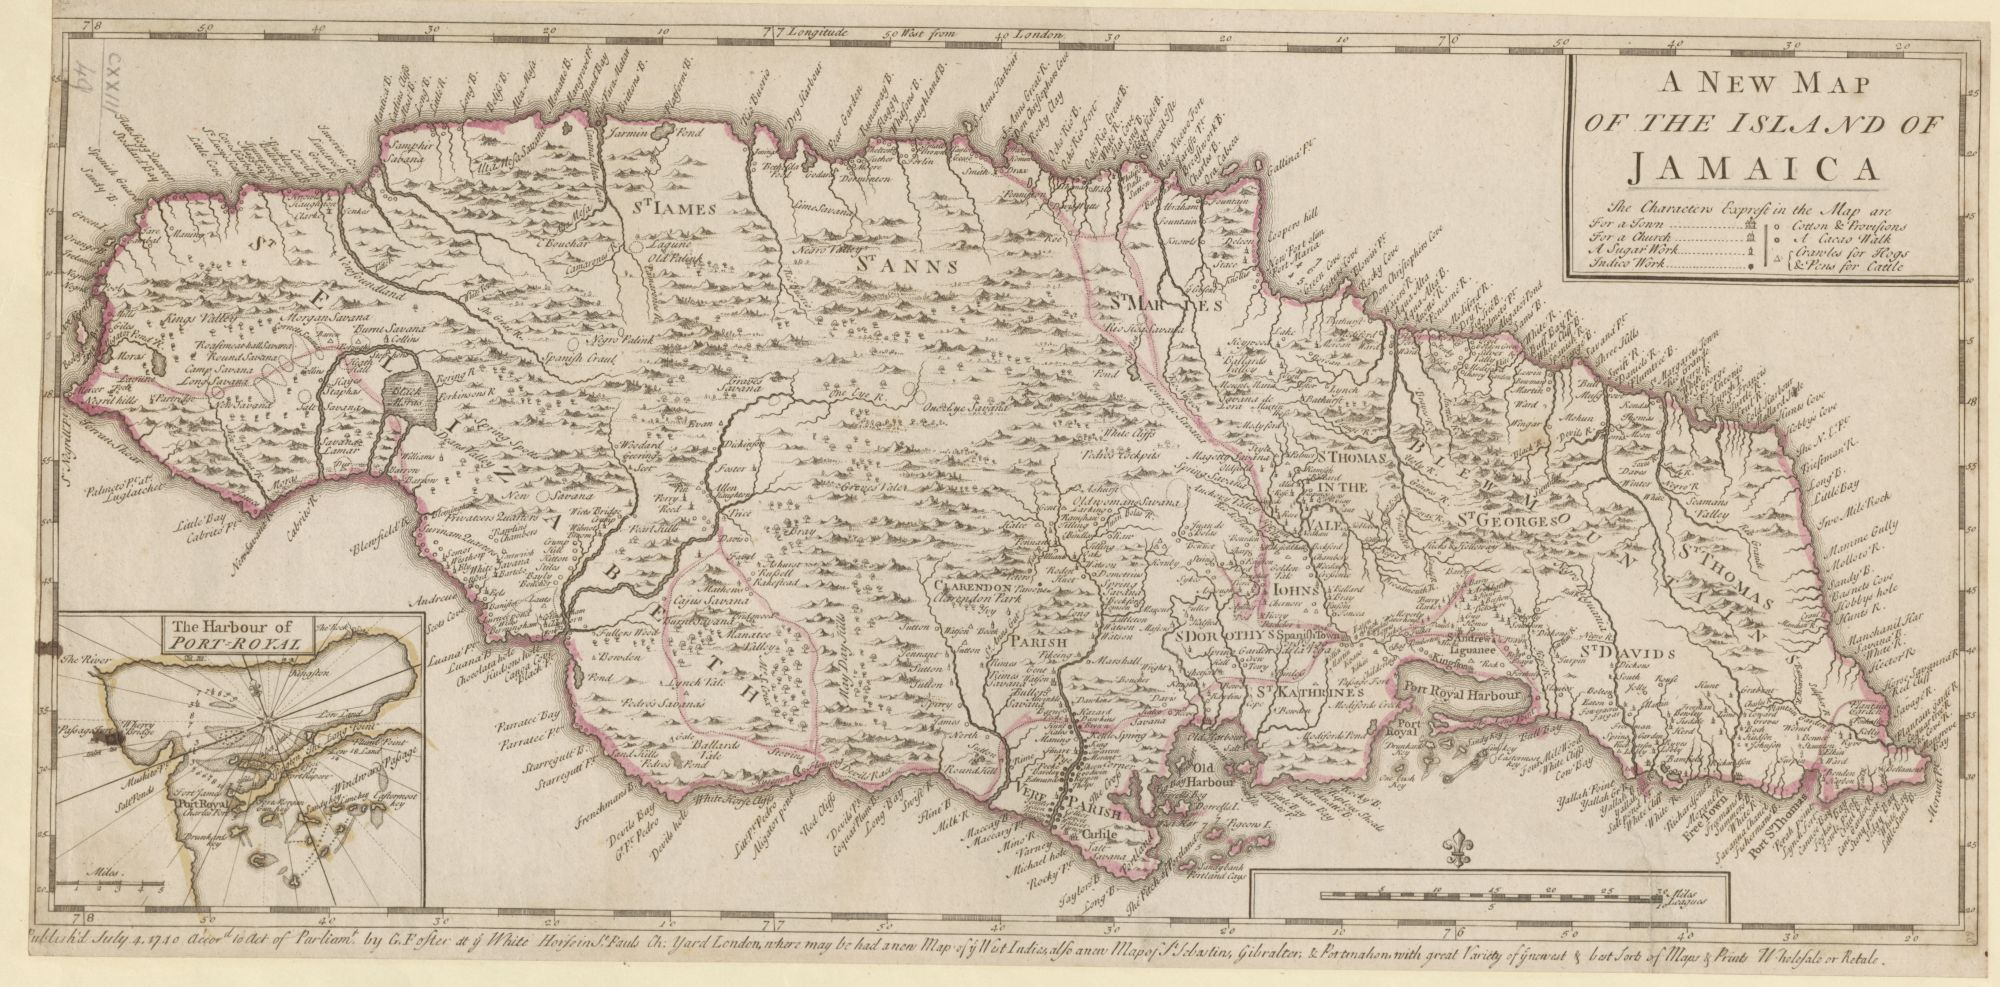 George Foster's Map of Jamaica published in 1740